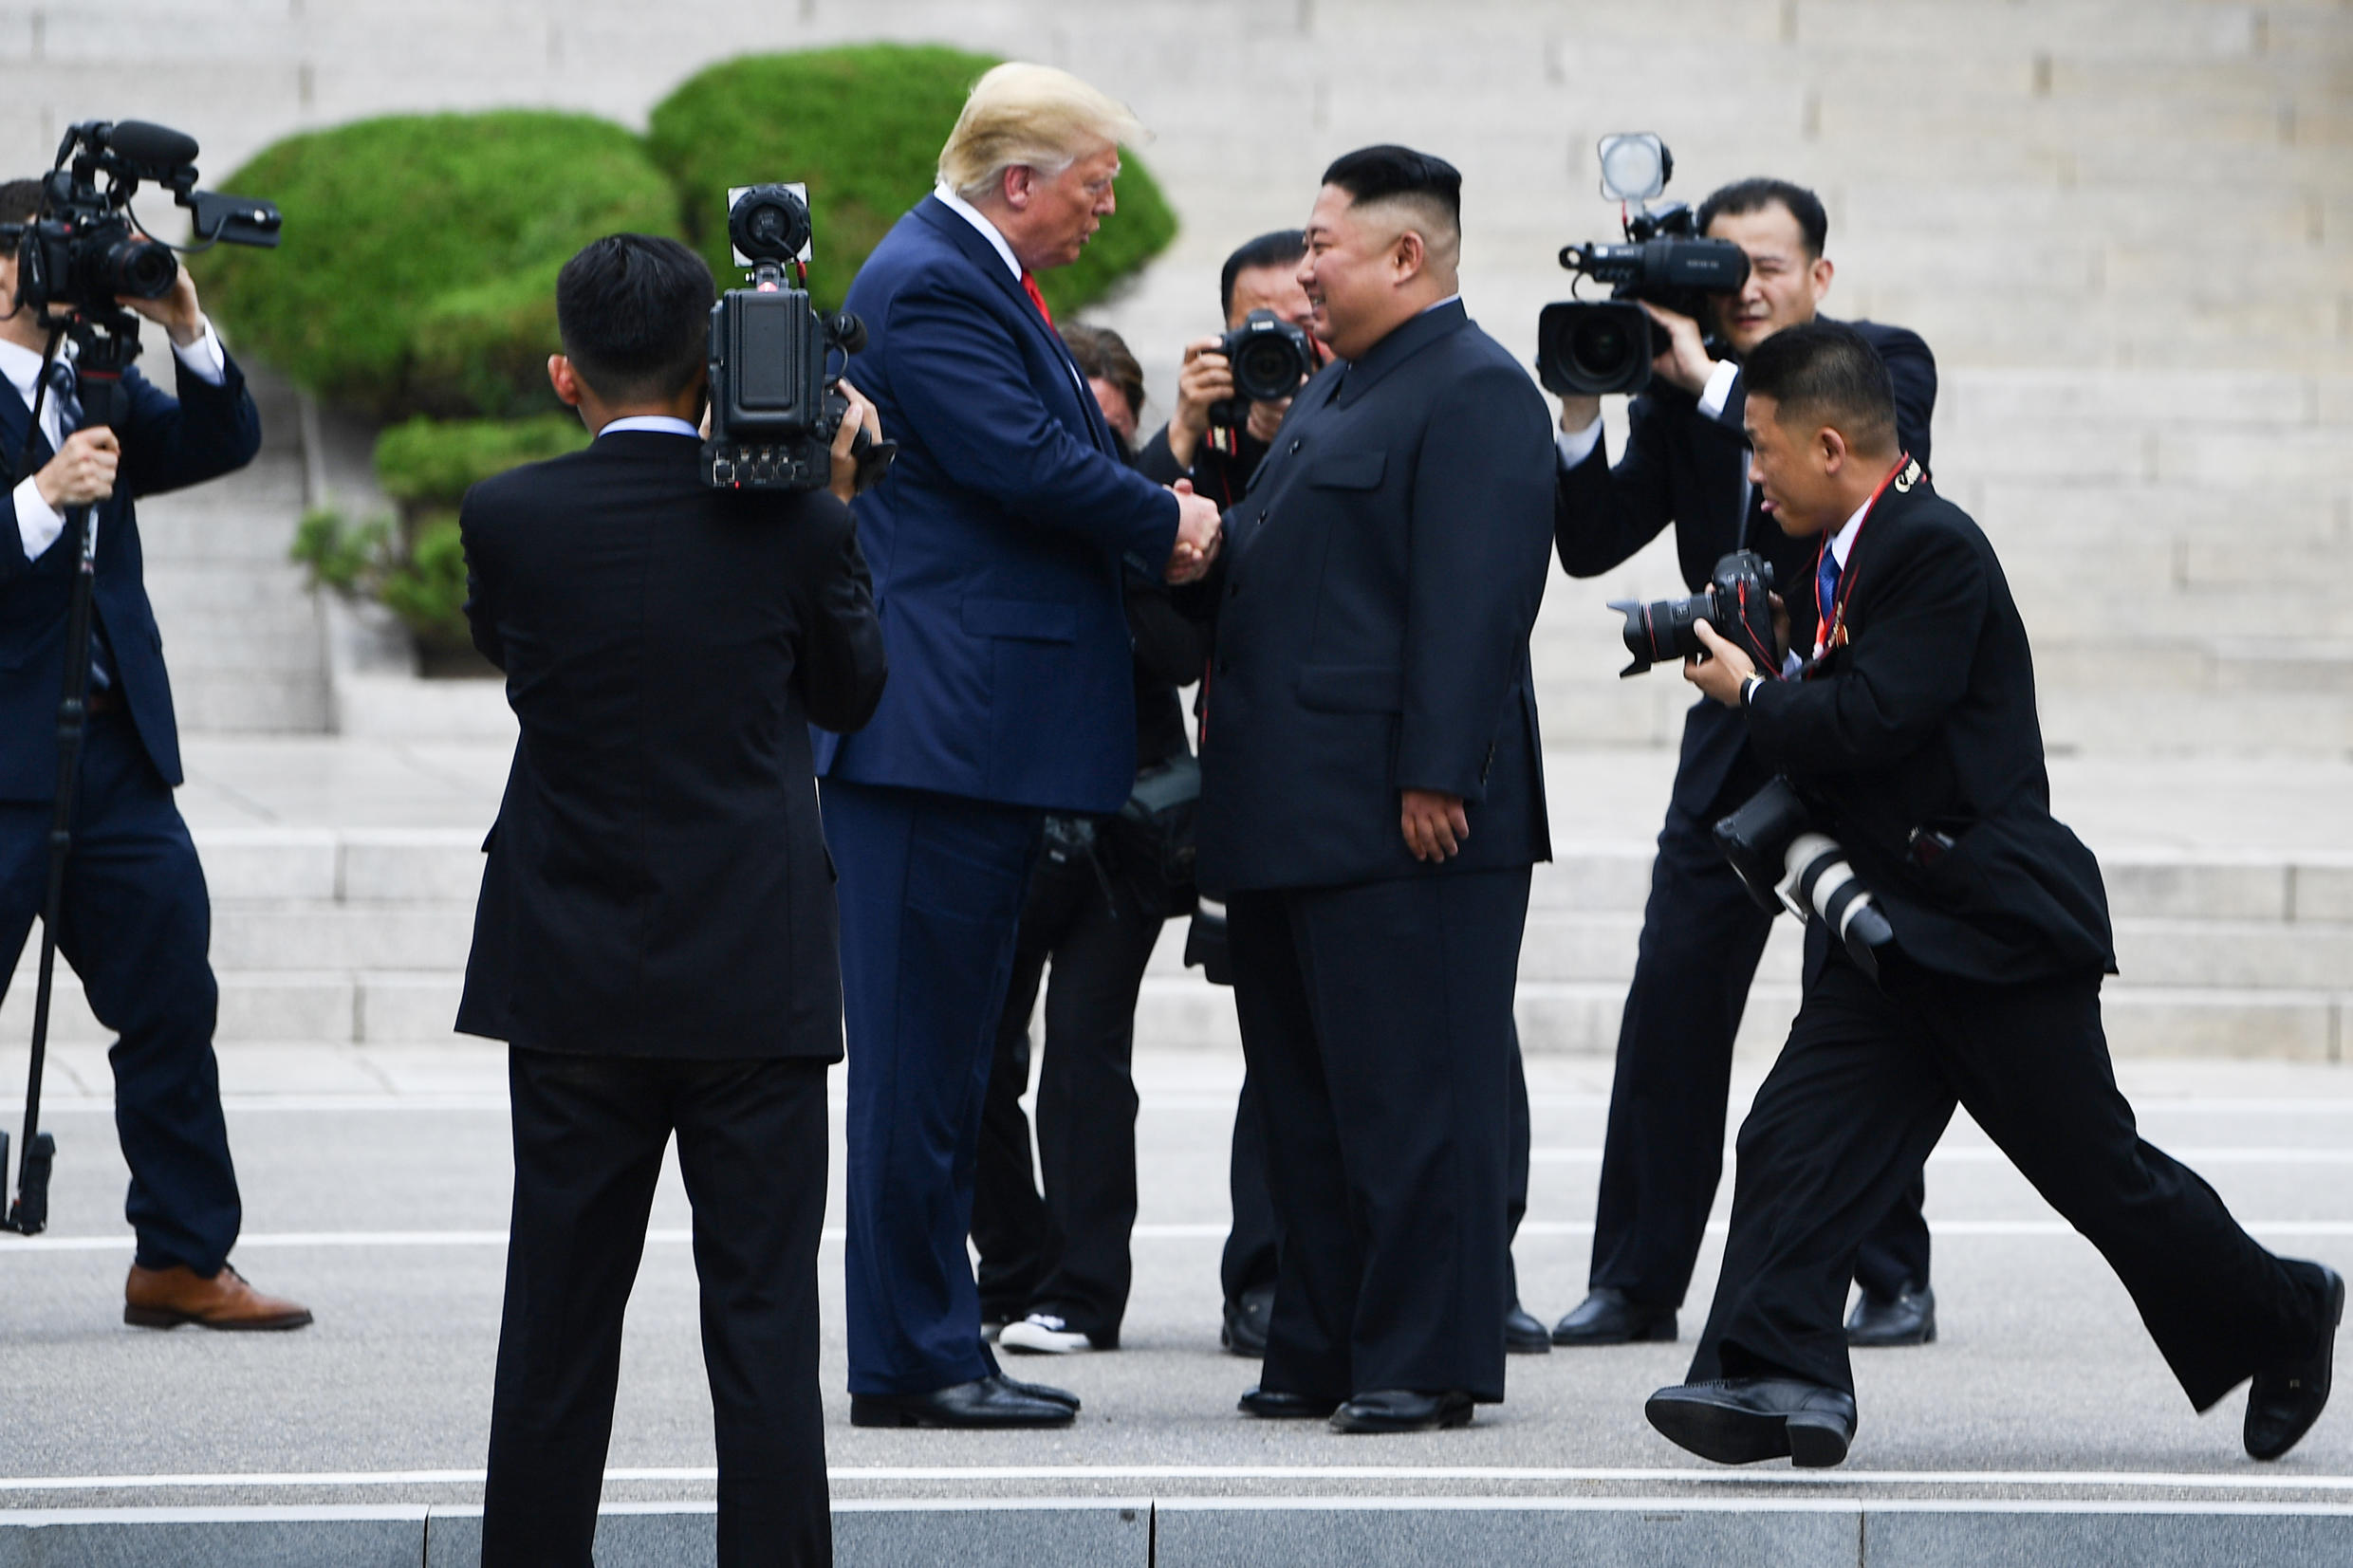 North Korean leader Kim Jong Un shakes hands with US President Donald Trump in the Demilitarized Zone of the two Koreas on June 30, 2019.